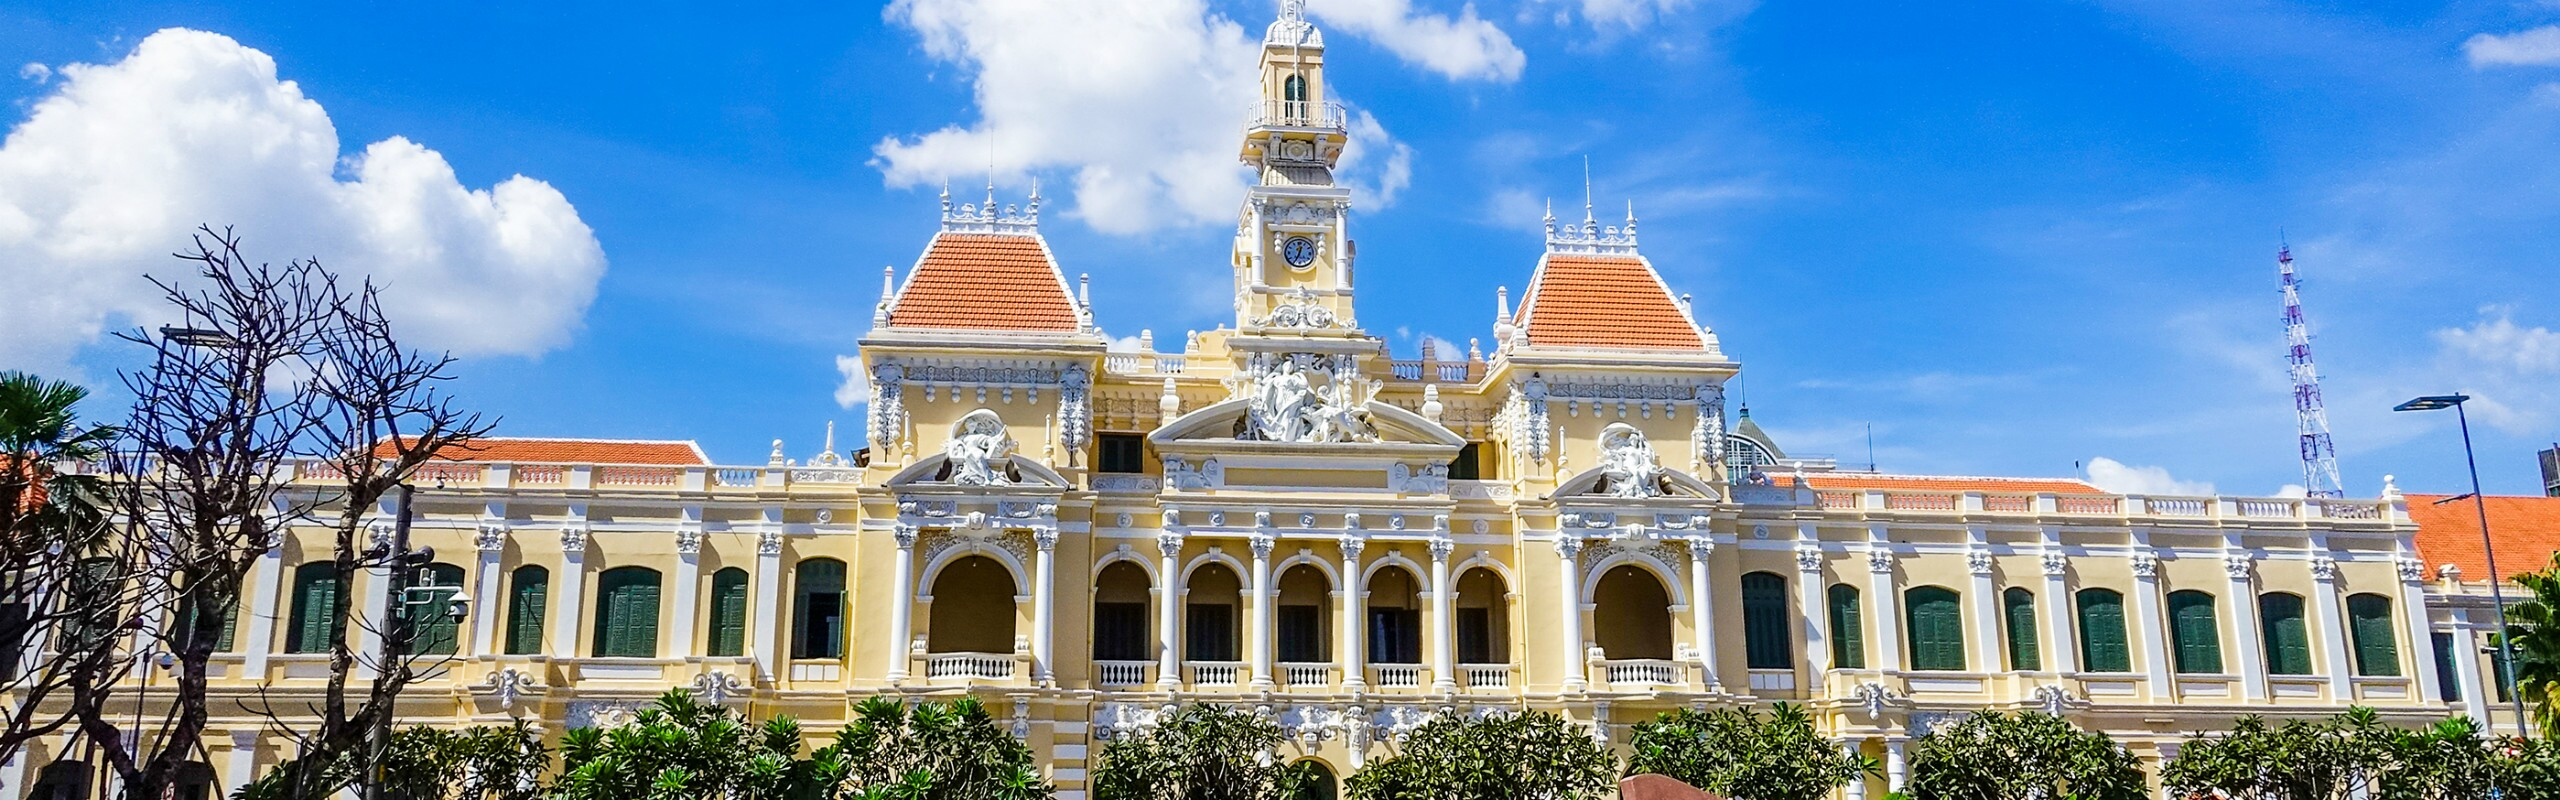 Top 9 Attractions in Ho Chi Minh City